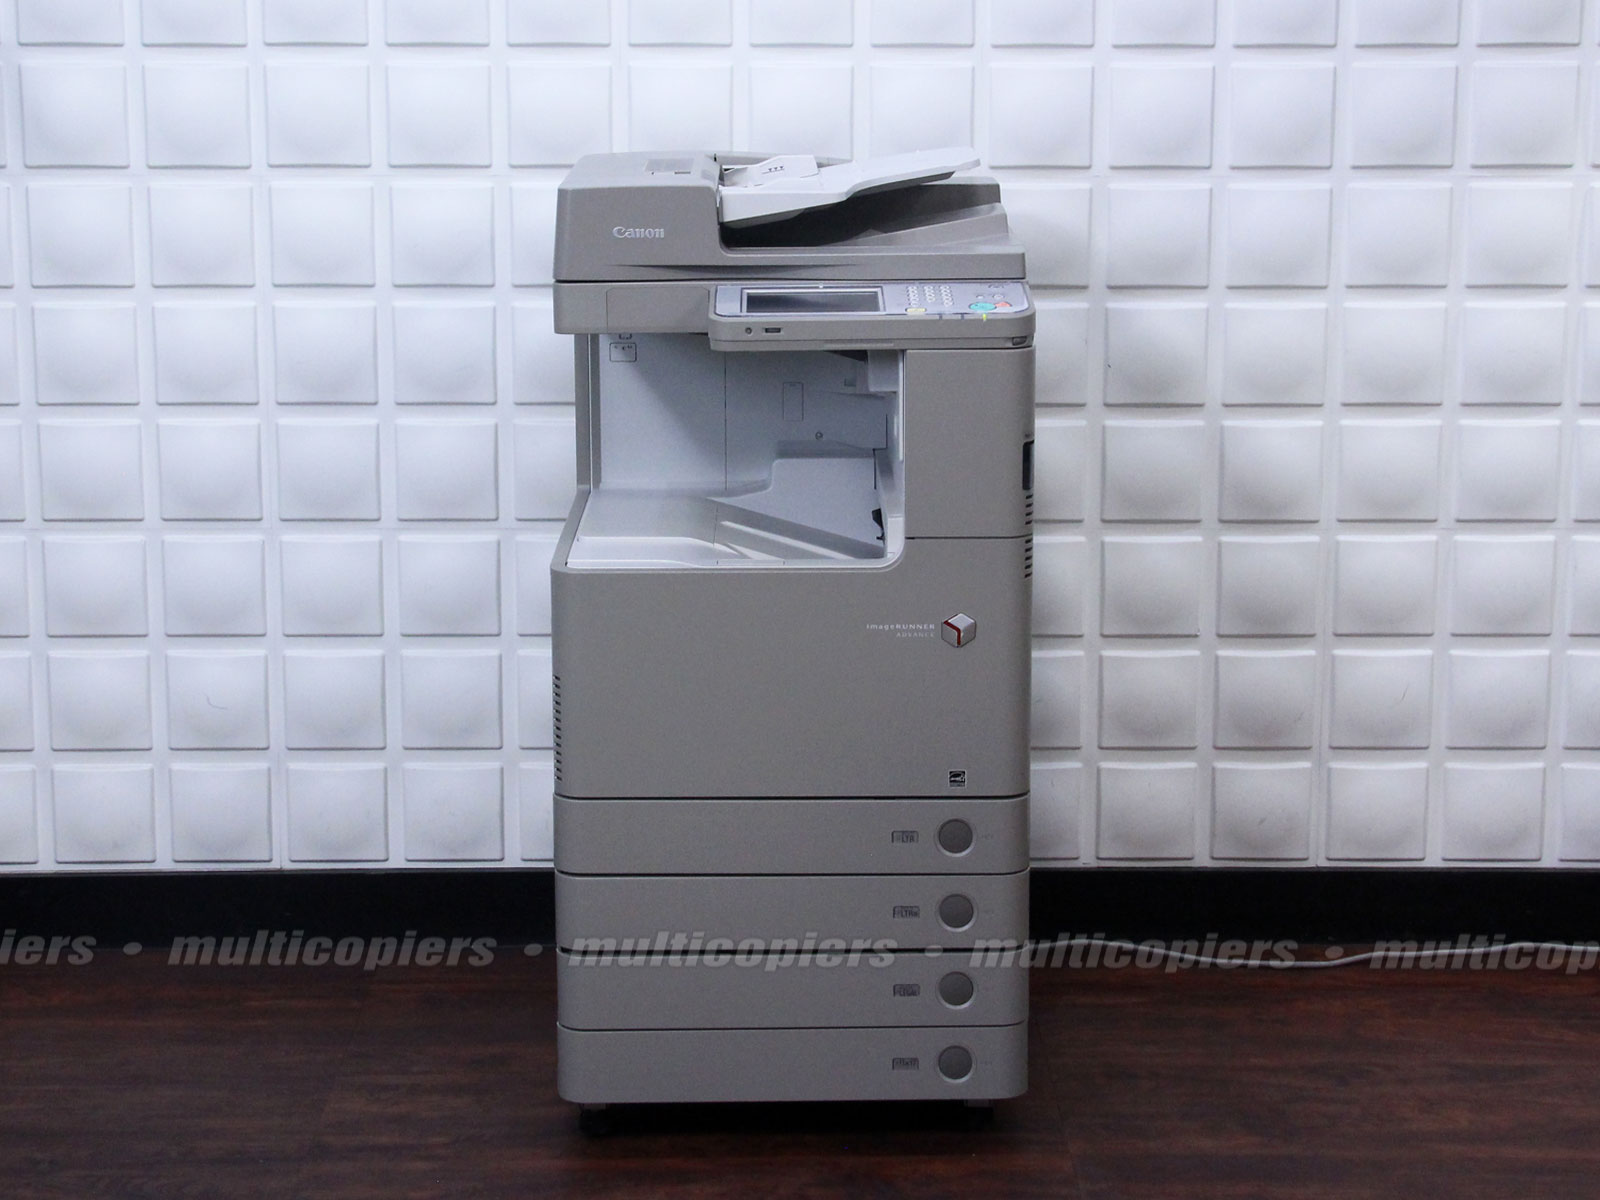 CANON IMAGERUNNER ADVANCE C5035 MFP PS3 WINDOWS 10 DRIVERS